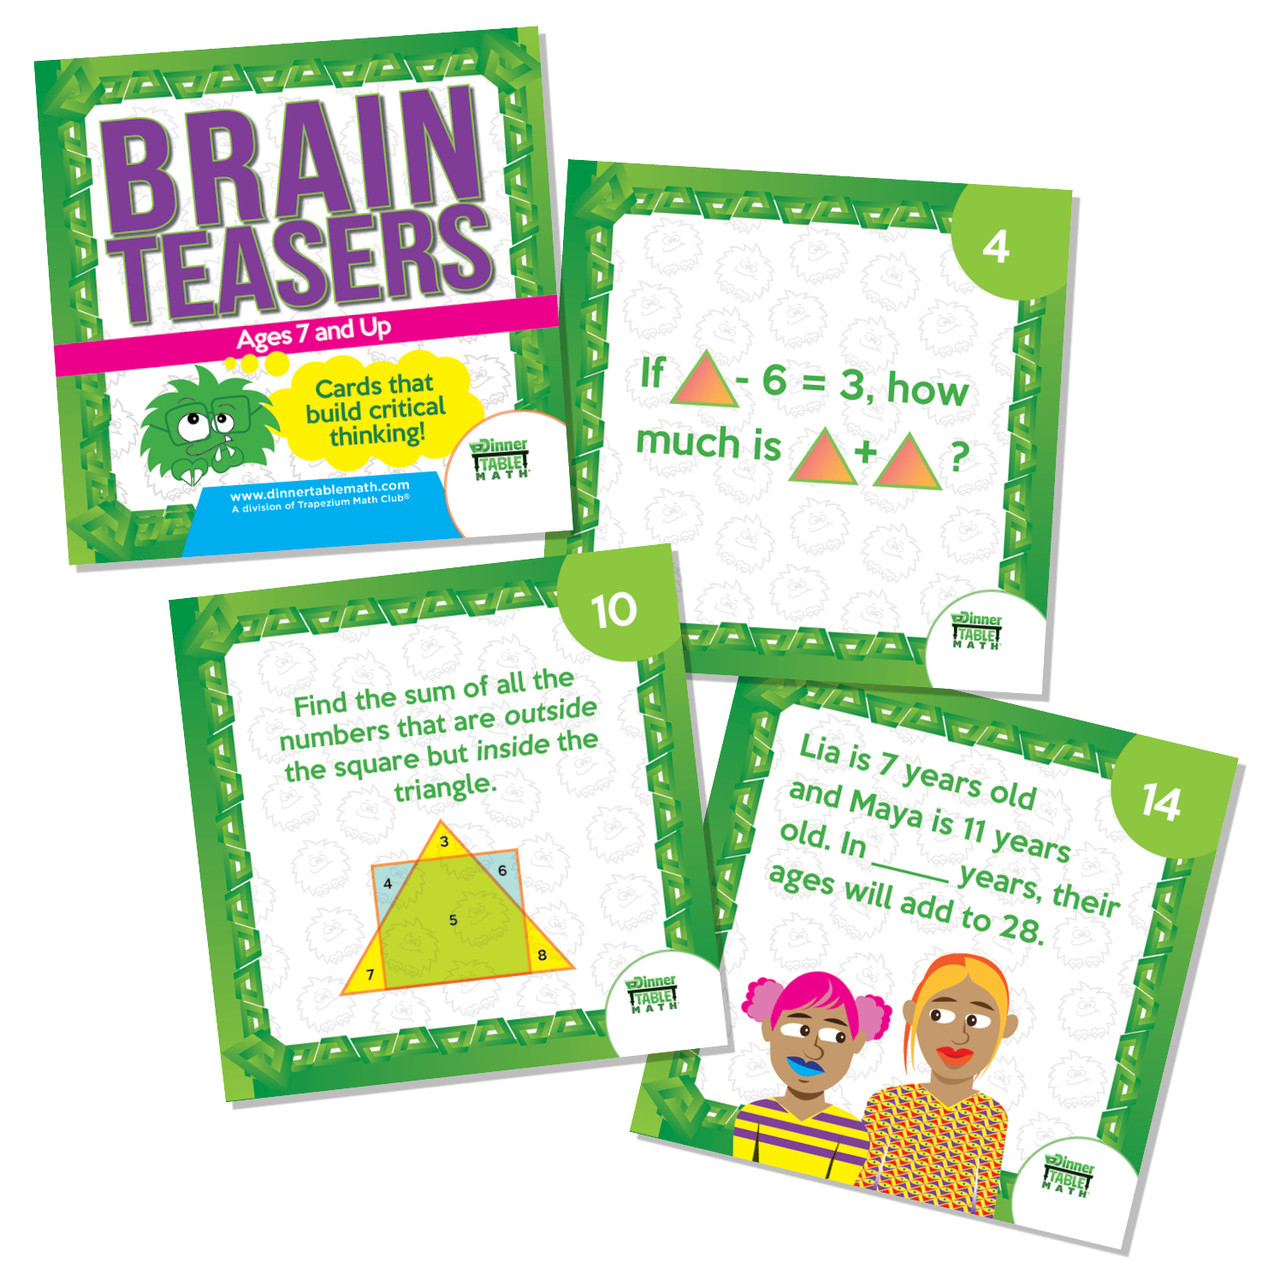 Brainteasers Green Level (Ages 7 and up)